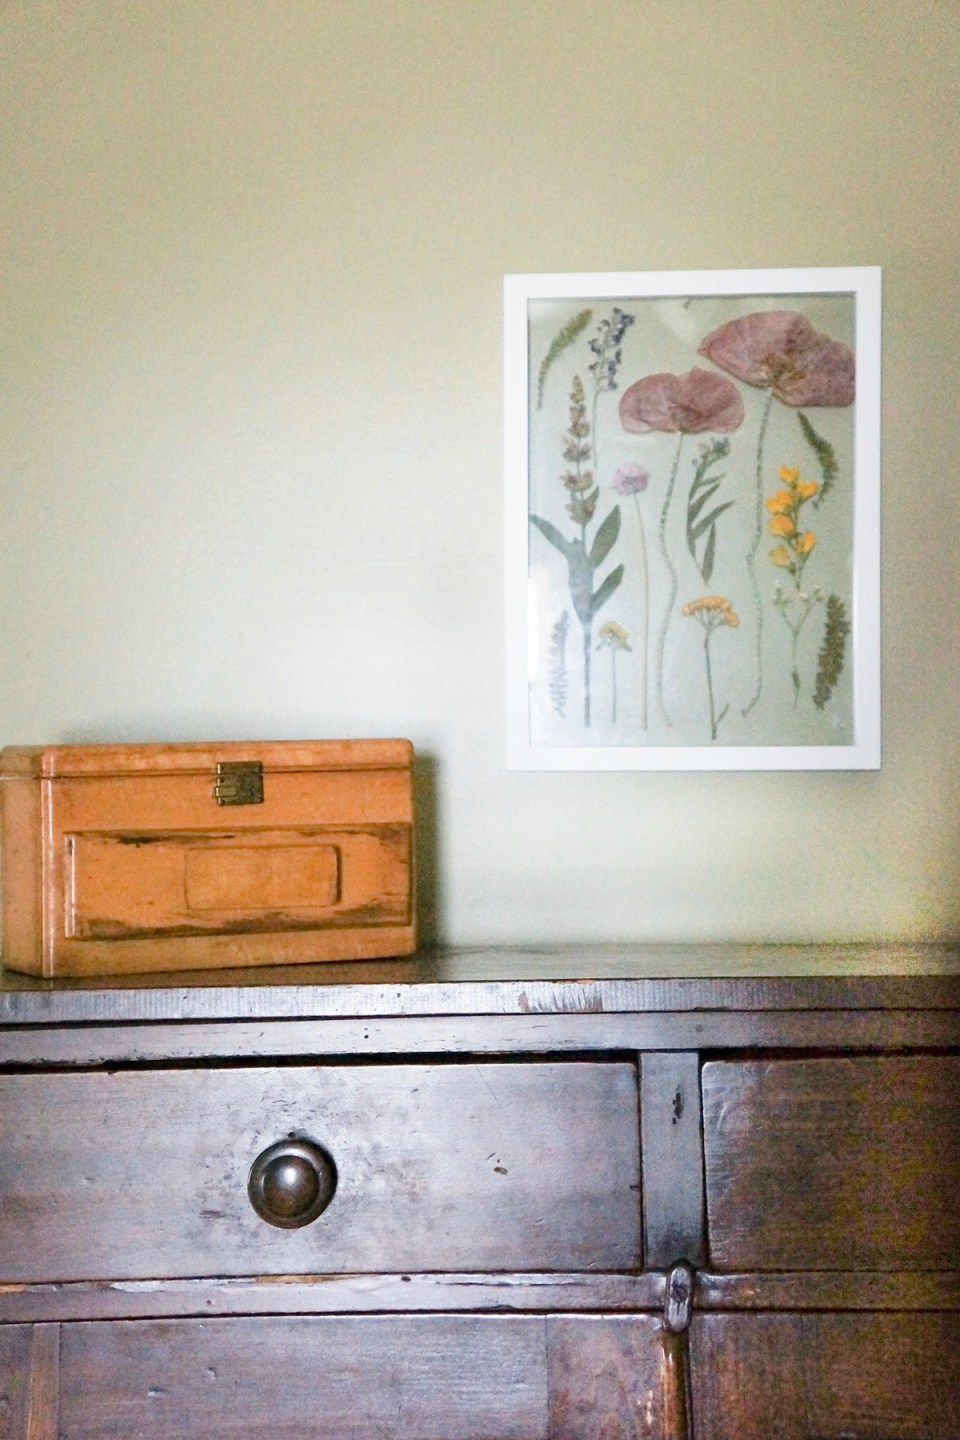 How To Make Framed Botanicals to Decorate Your Home | Herbal Academy | Bring plants into your home in a whole new way by decorating your walls with framed botanicals. Get the steps and details here.